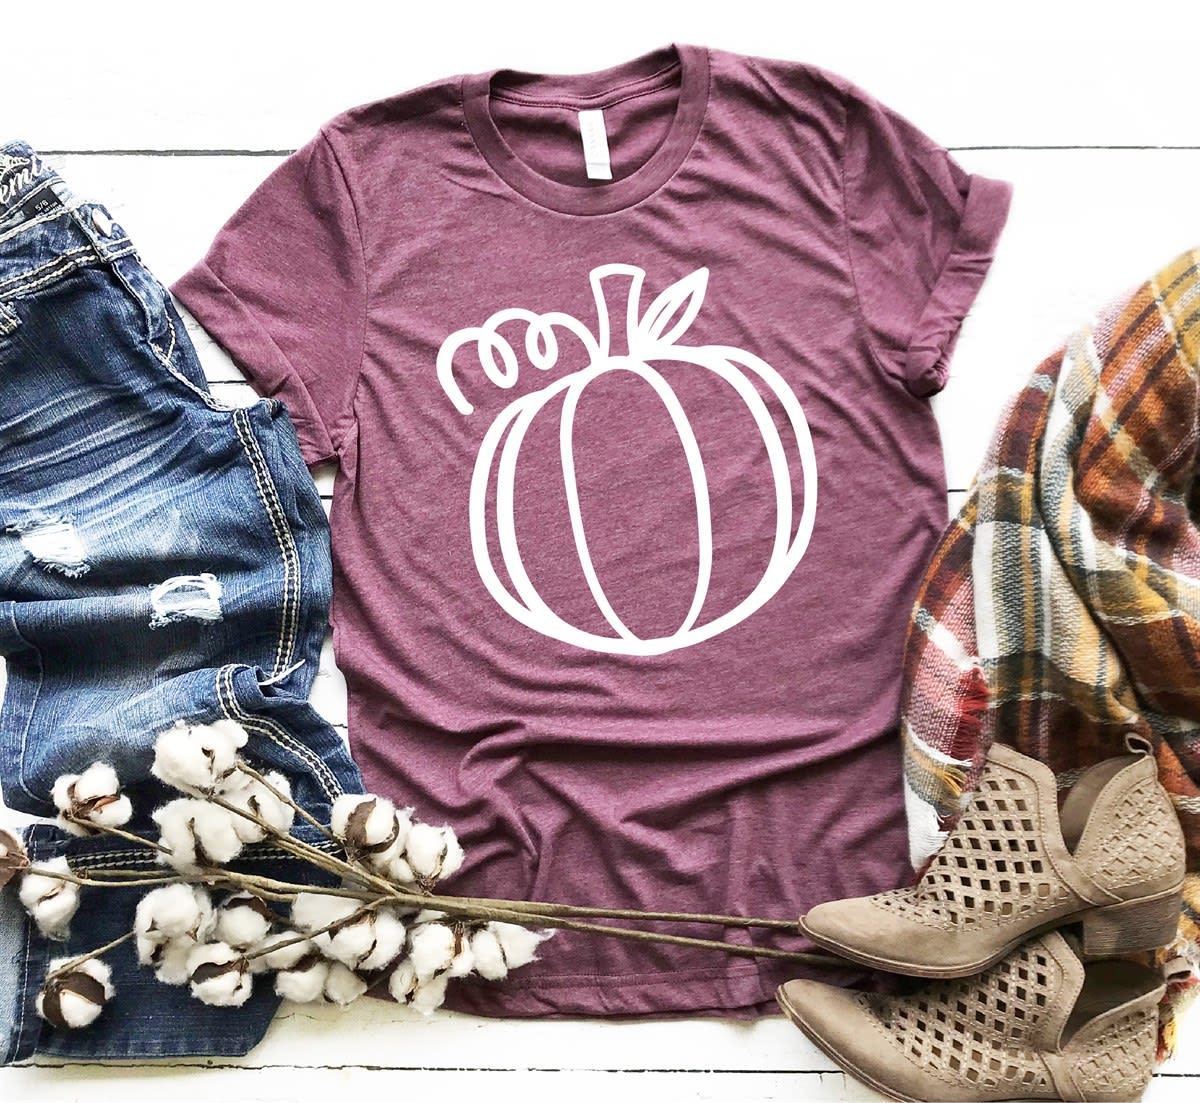 Country Fall Tees | 4 Designs